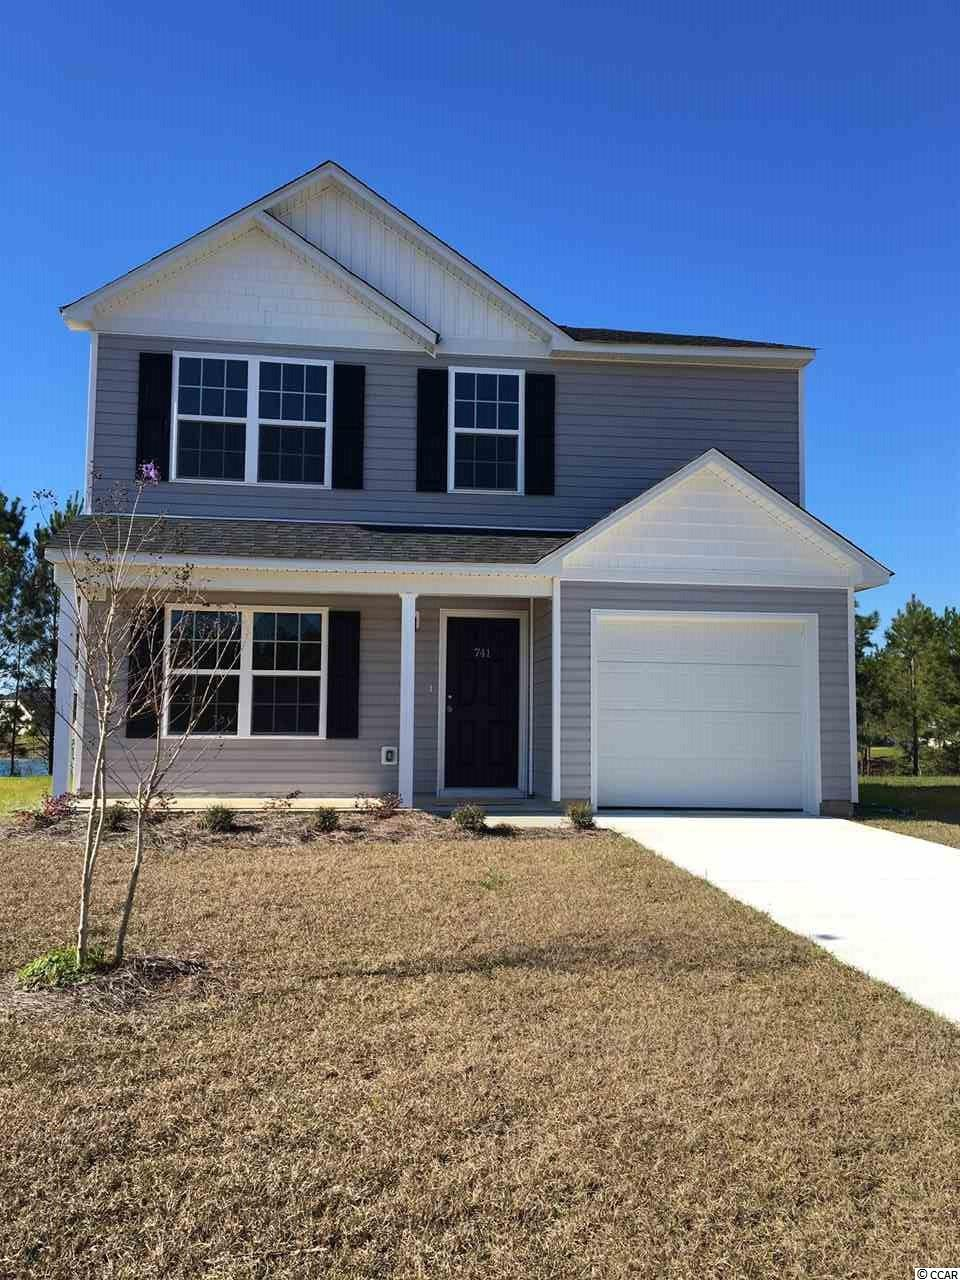 741 Trap Shooter Circle, Longs, SC 29568